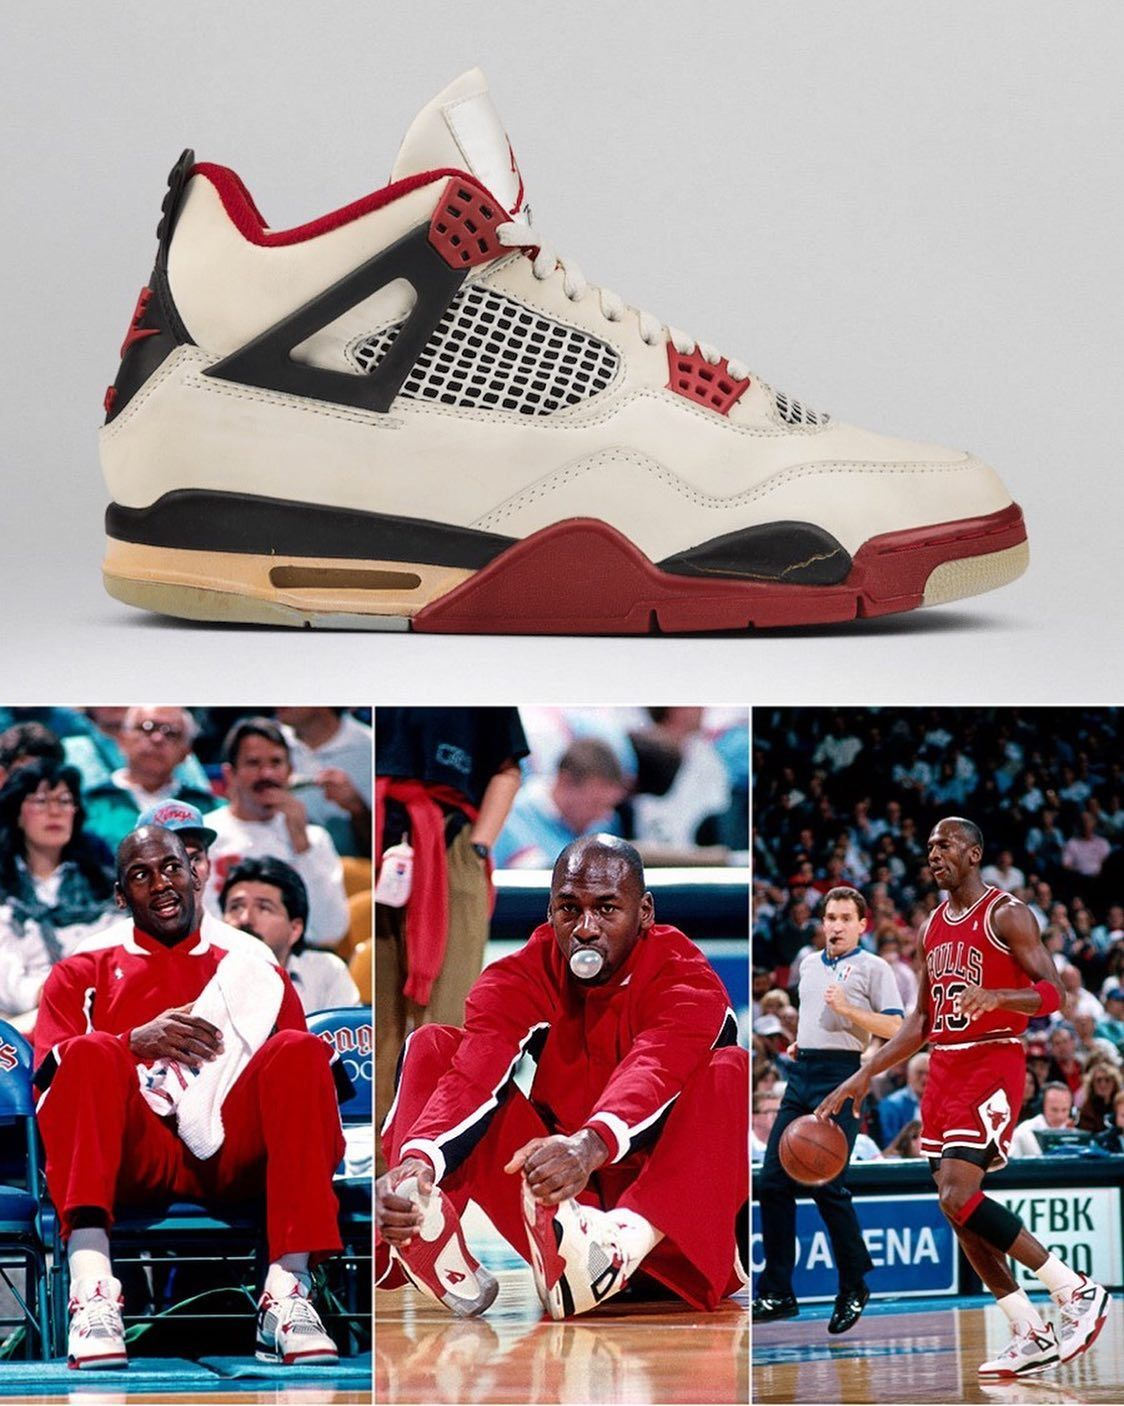 The Air Jordan 4 Fire Red Is Returning Black Friday With Nike Air Like If You Re Buying Sneakerfiles Com In 2020 Air Jordans Jordan 4 Newest Jordans